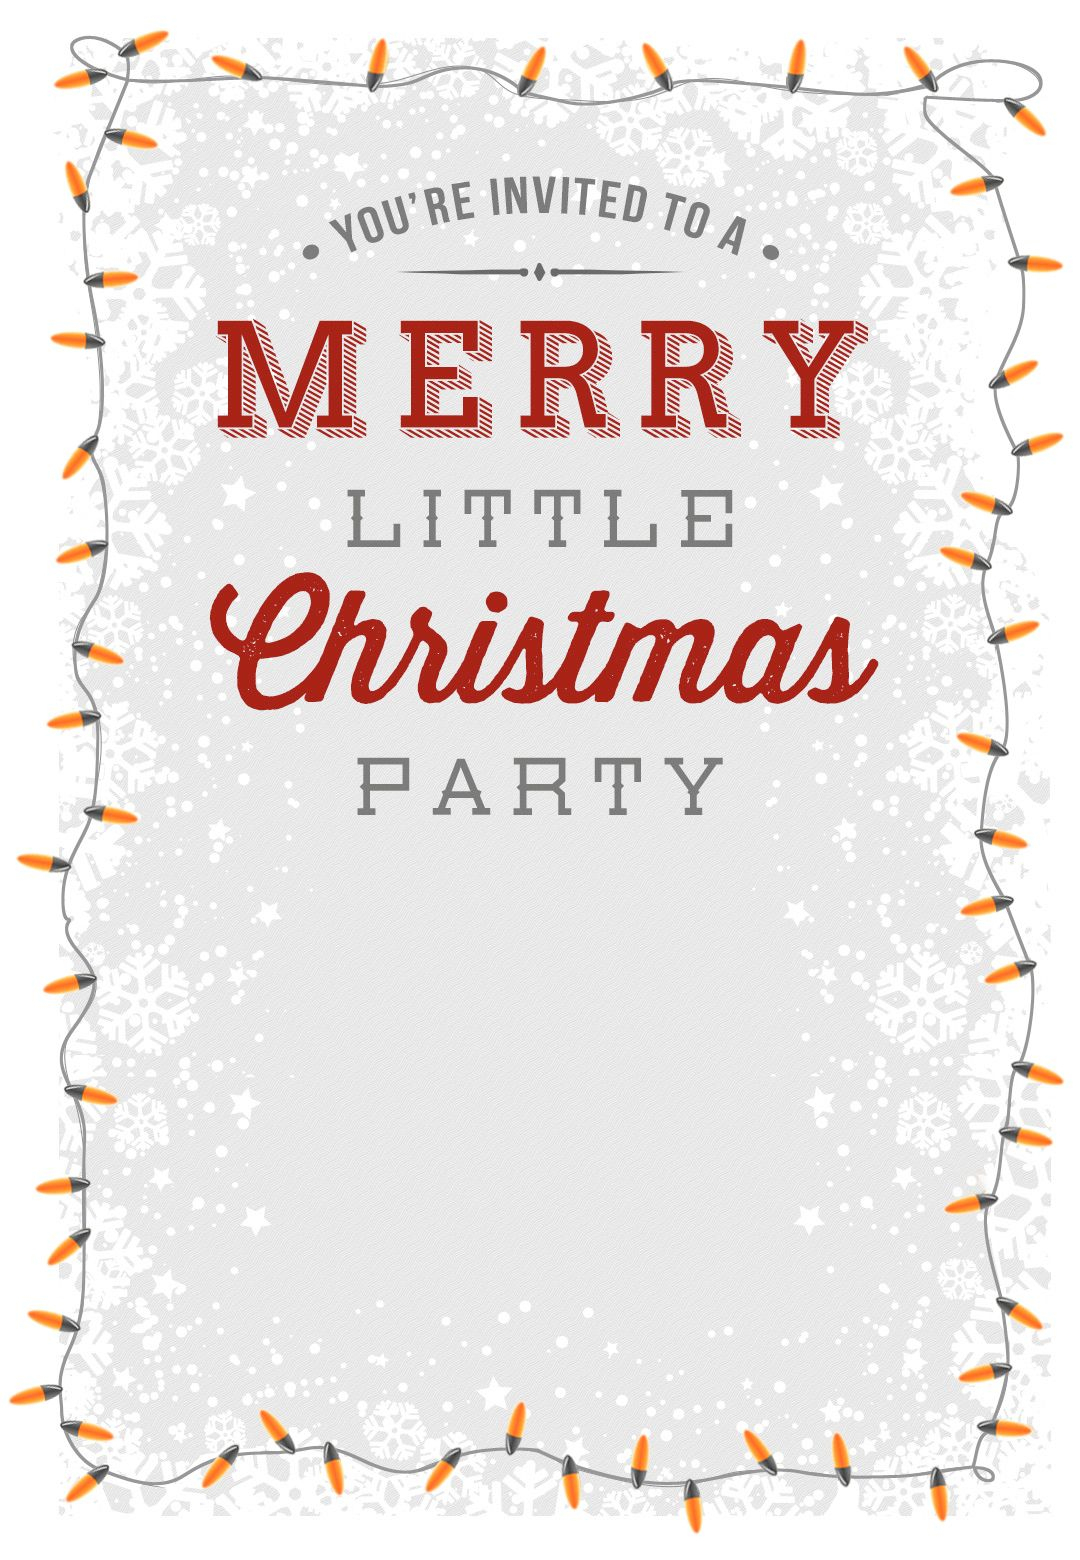 A Merry Little Party - Free Printable Christmas Invitation Template - Free Printable Christmas Party Invitations